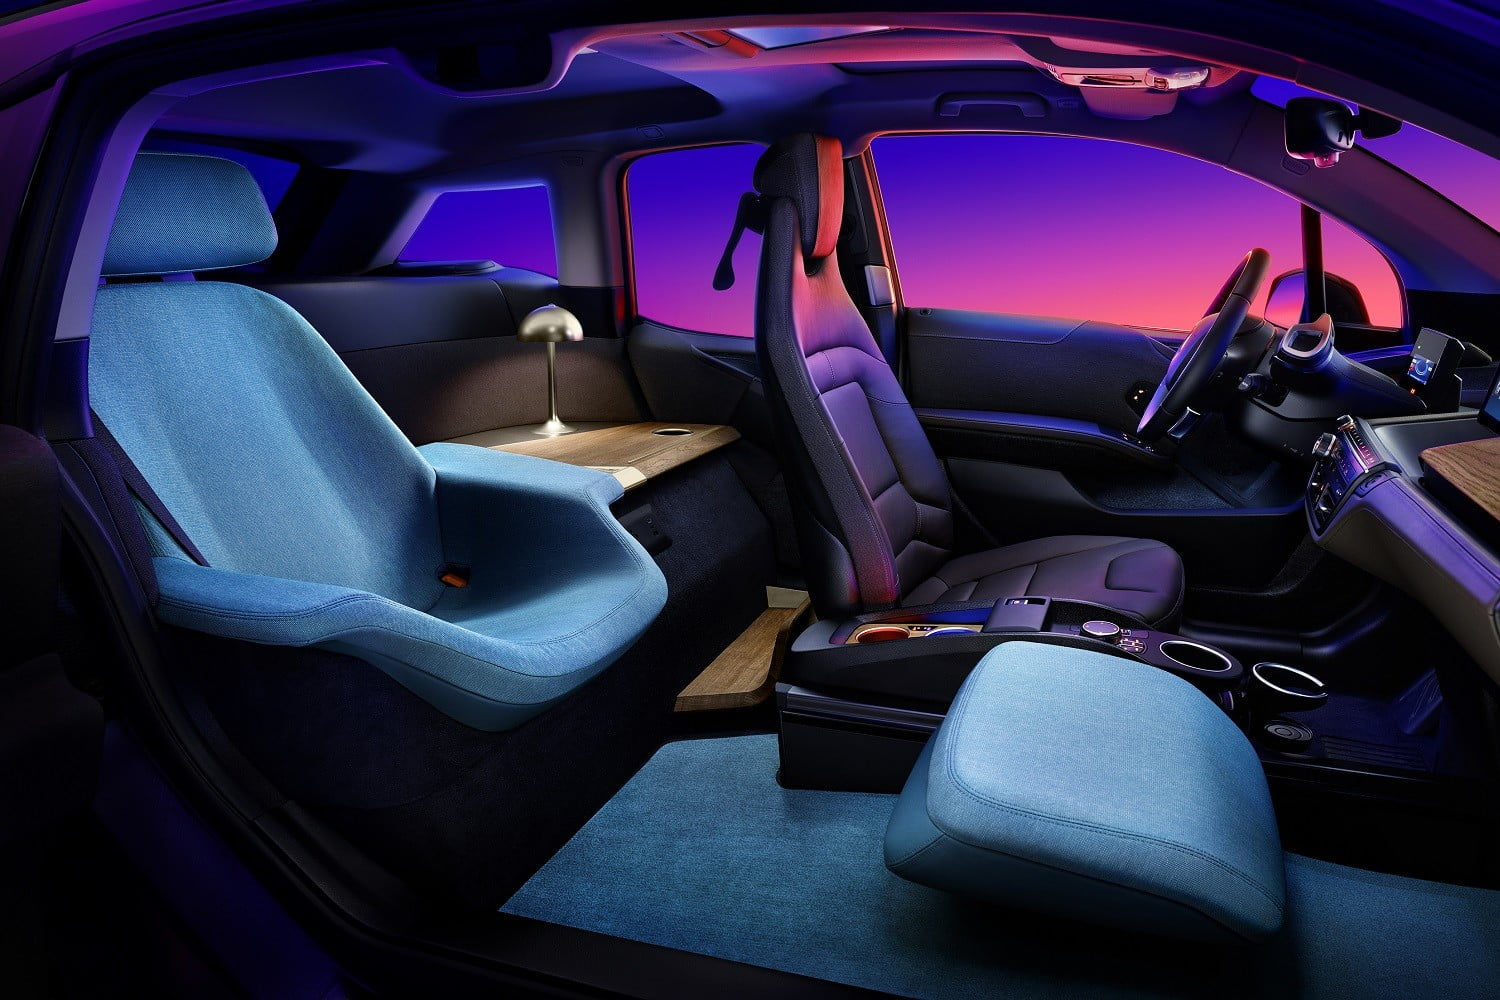 At CES 2020, BMW will make sleeping in a city car sound attractive